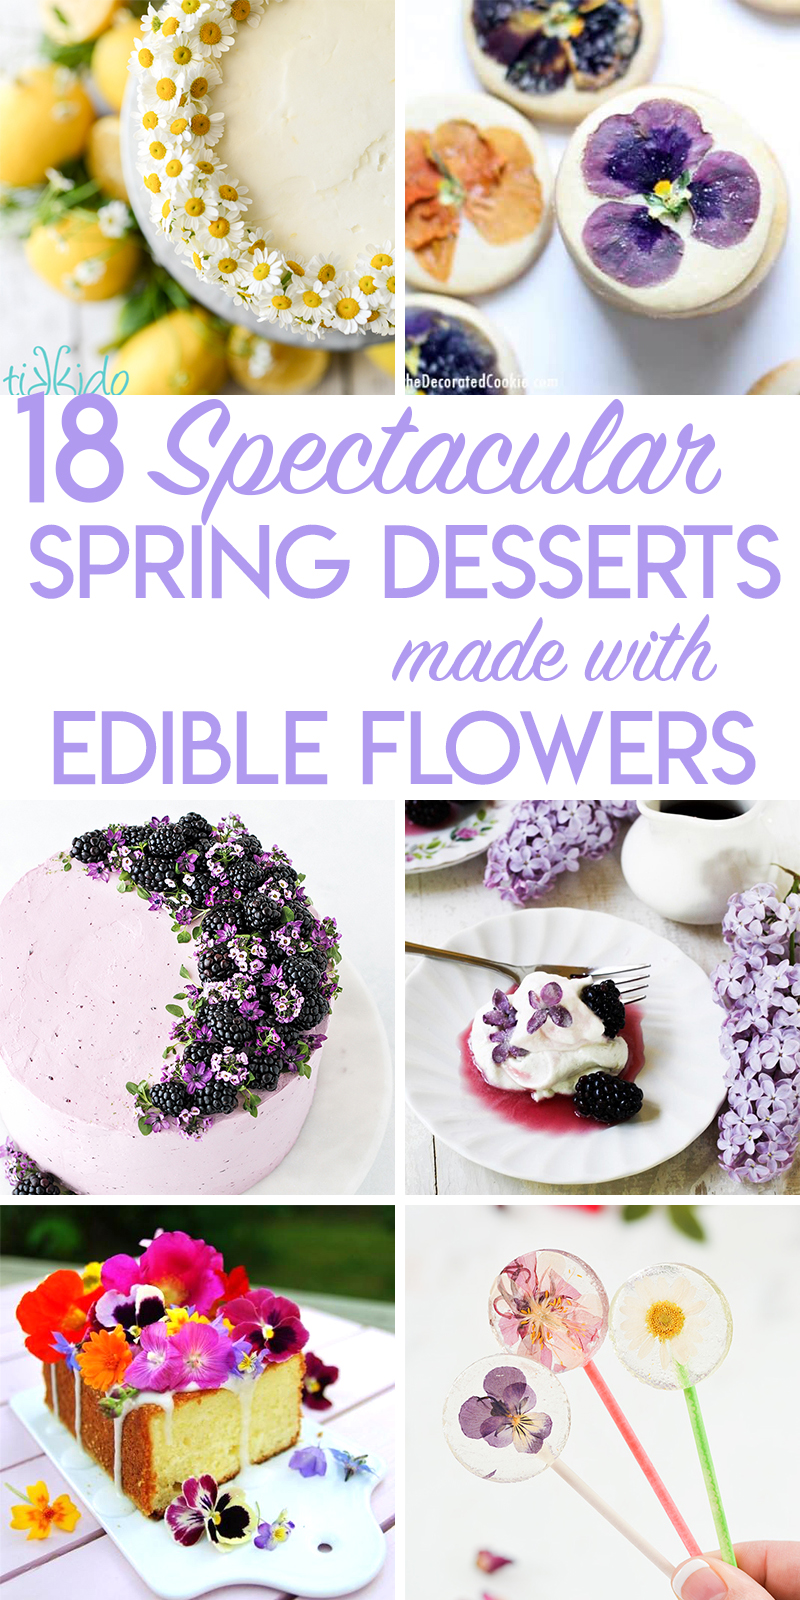 Collage of Spring Dessert Recipes using Edible Flowers optimized for pinterest.